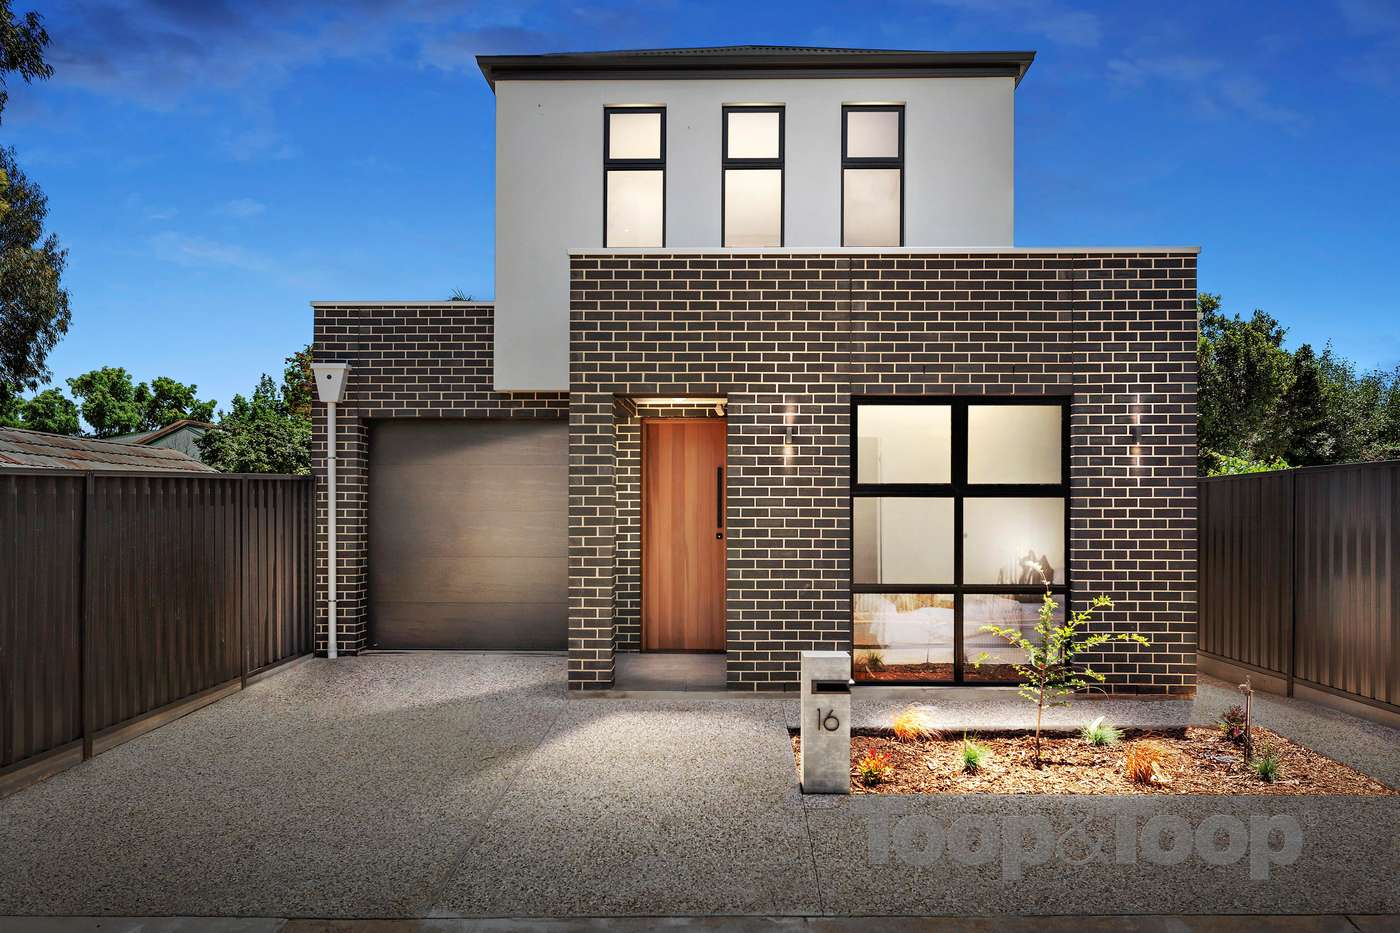 Main view of Homely house listing, 16 Fisher Place, Mile End, SA 5031